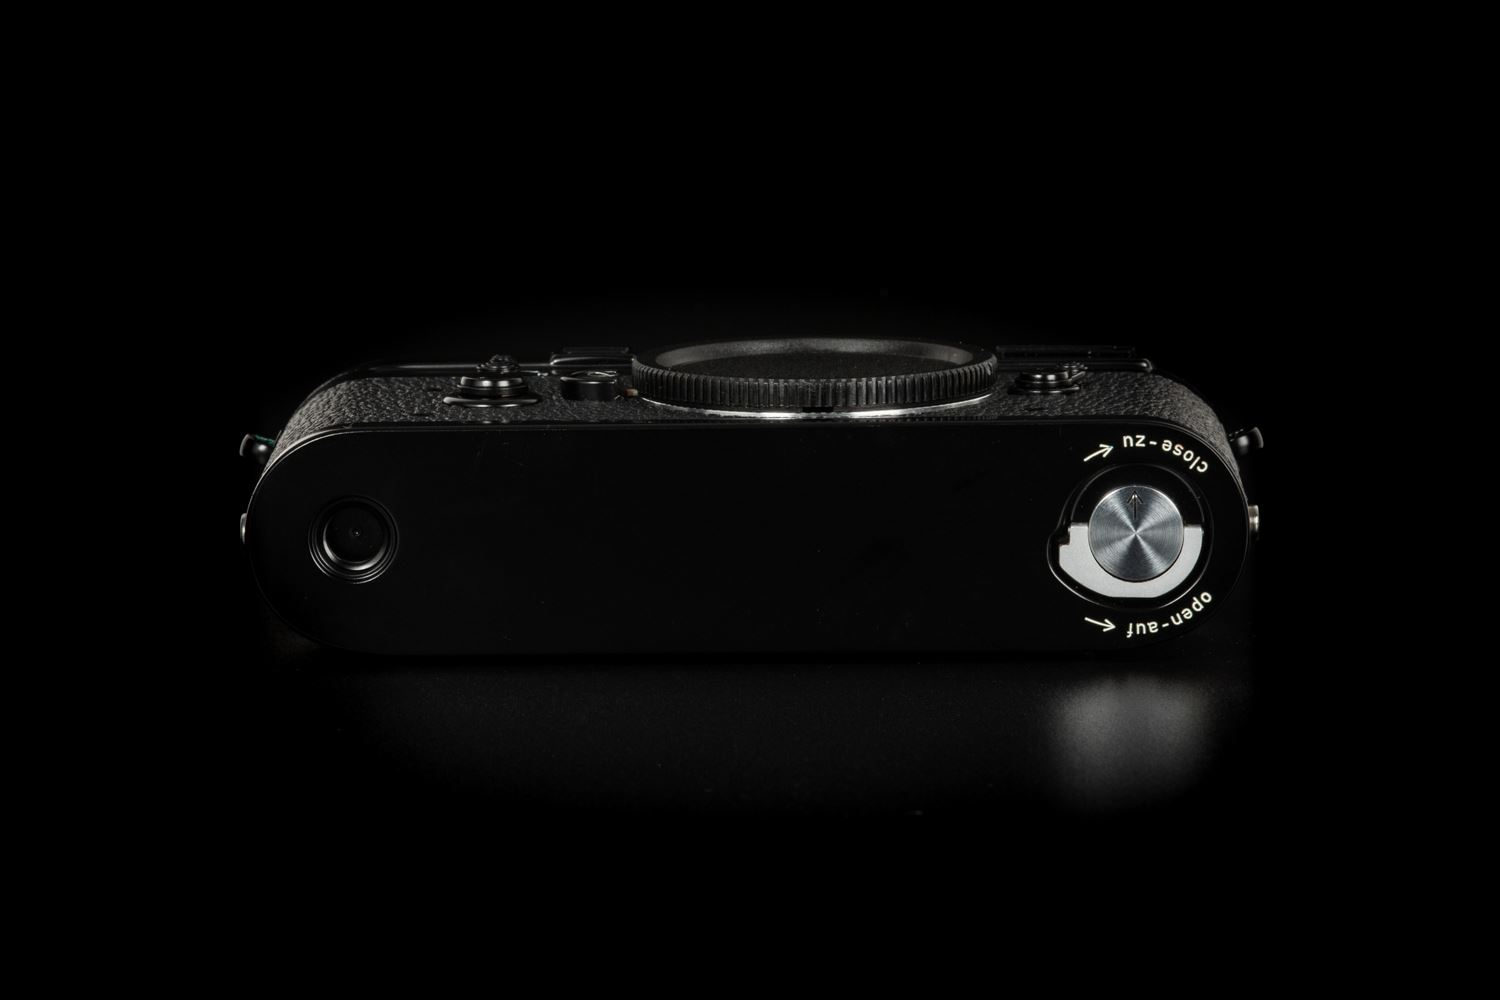 Picture of Leica M3 Kanto Repaint Black Paint